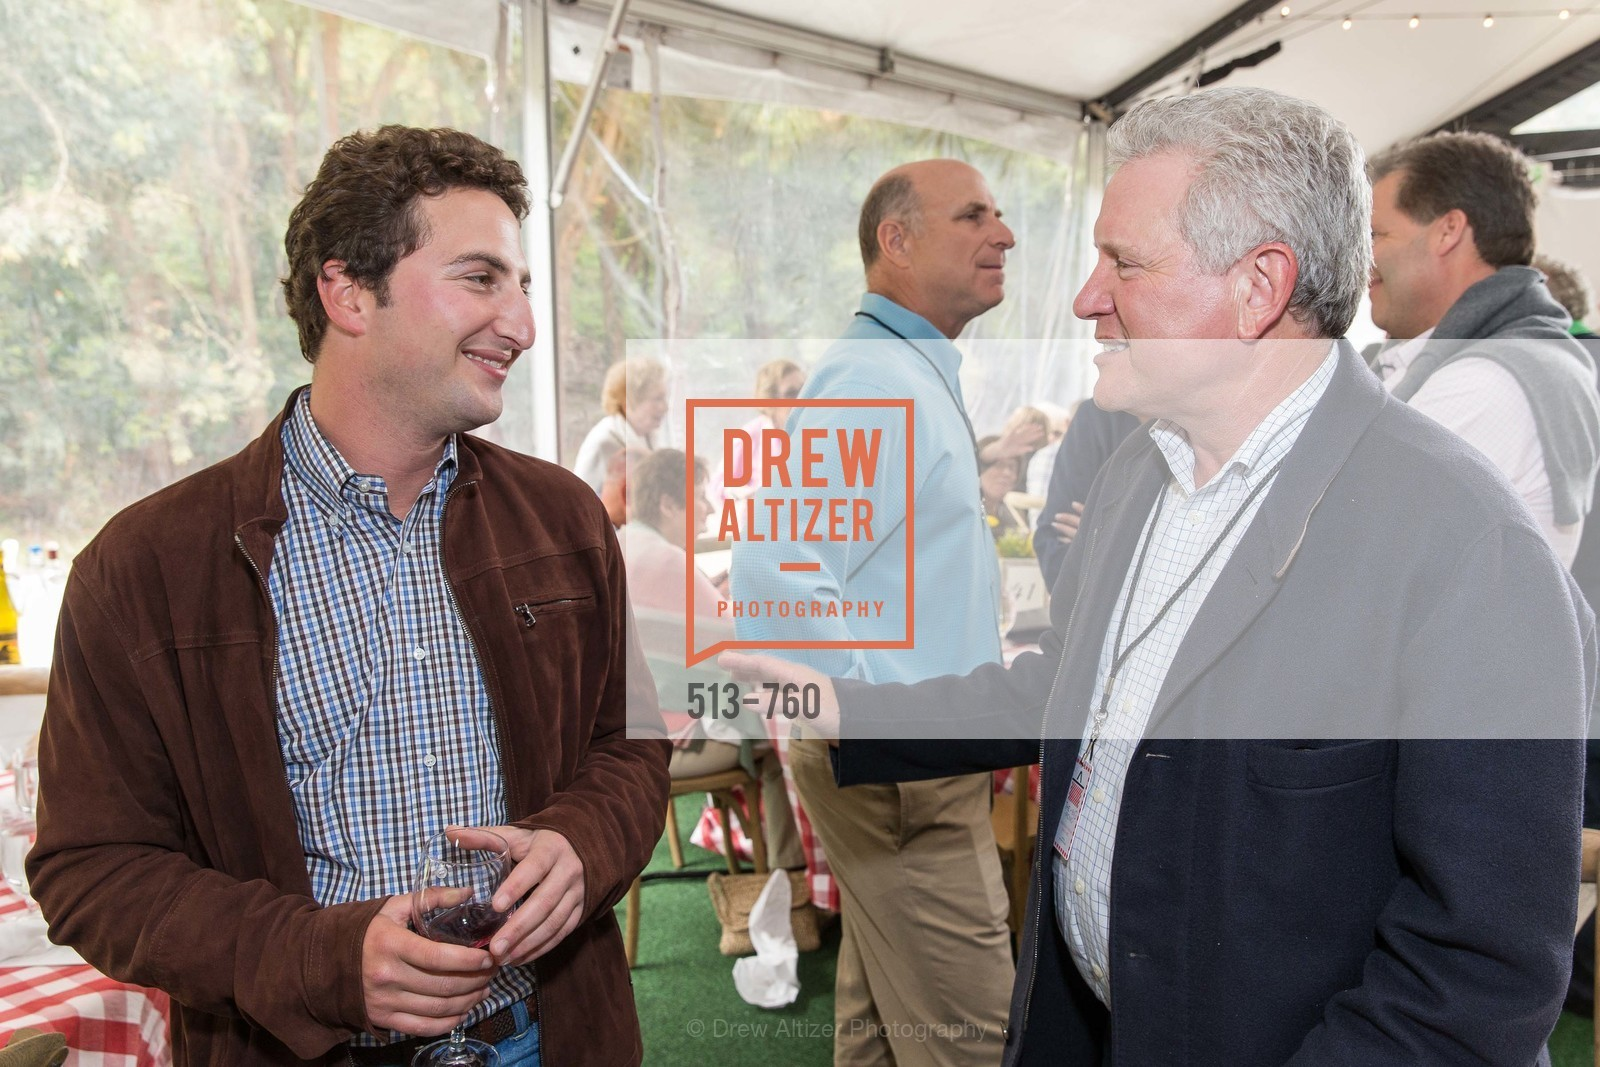 Jason Goldman, Dean Cash, The Big Picnic! A Benefit & Concert for STERN GROVE FESTIVAL, US, June 14th, 2015,Drew Altizer, Drew Altizer Photography, full-service agency, private events, San Francisco photographer, photographer california